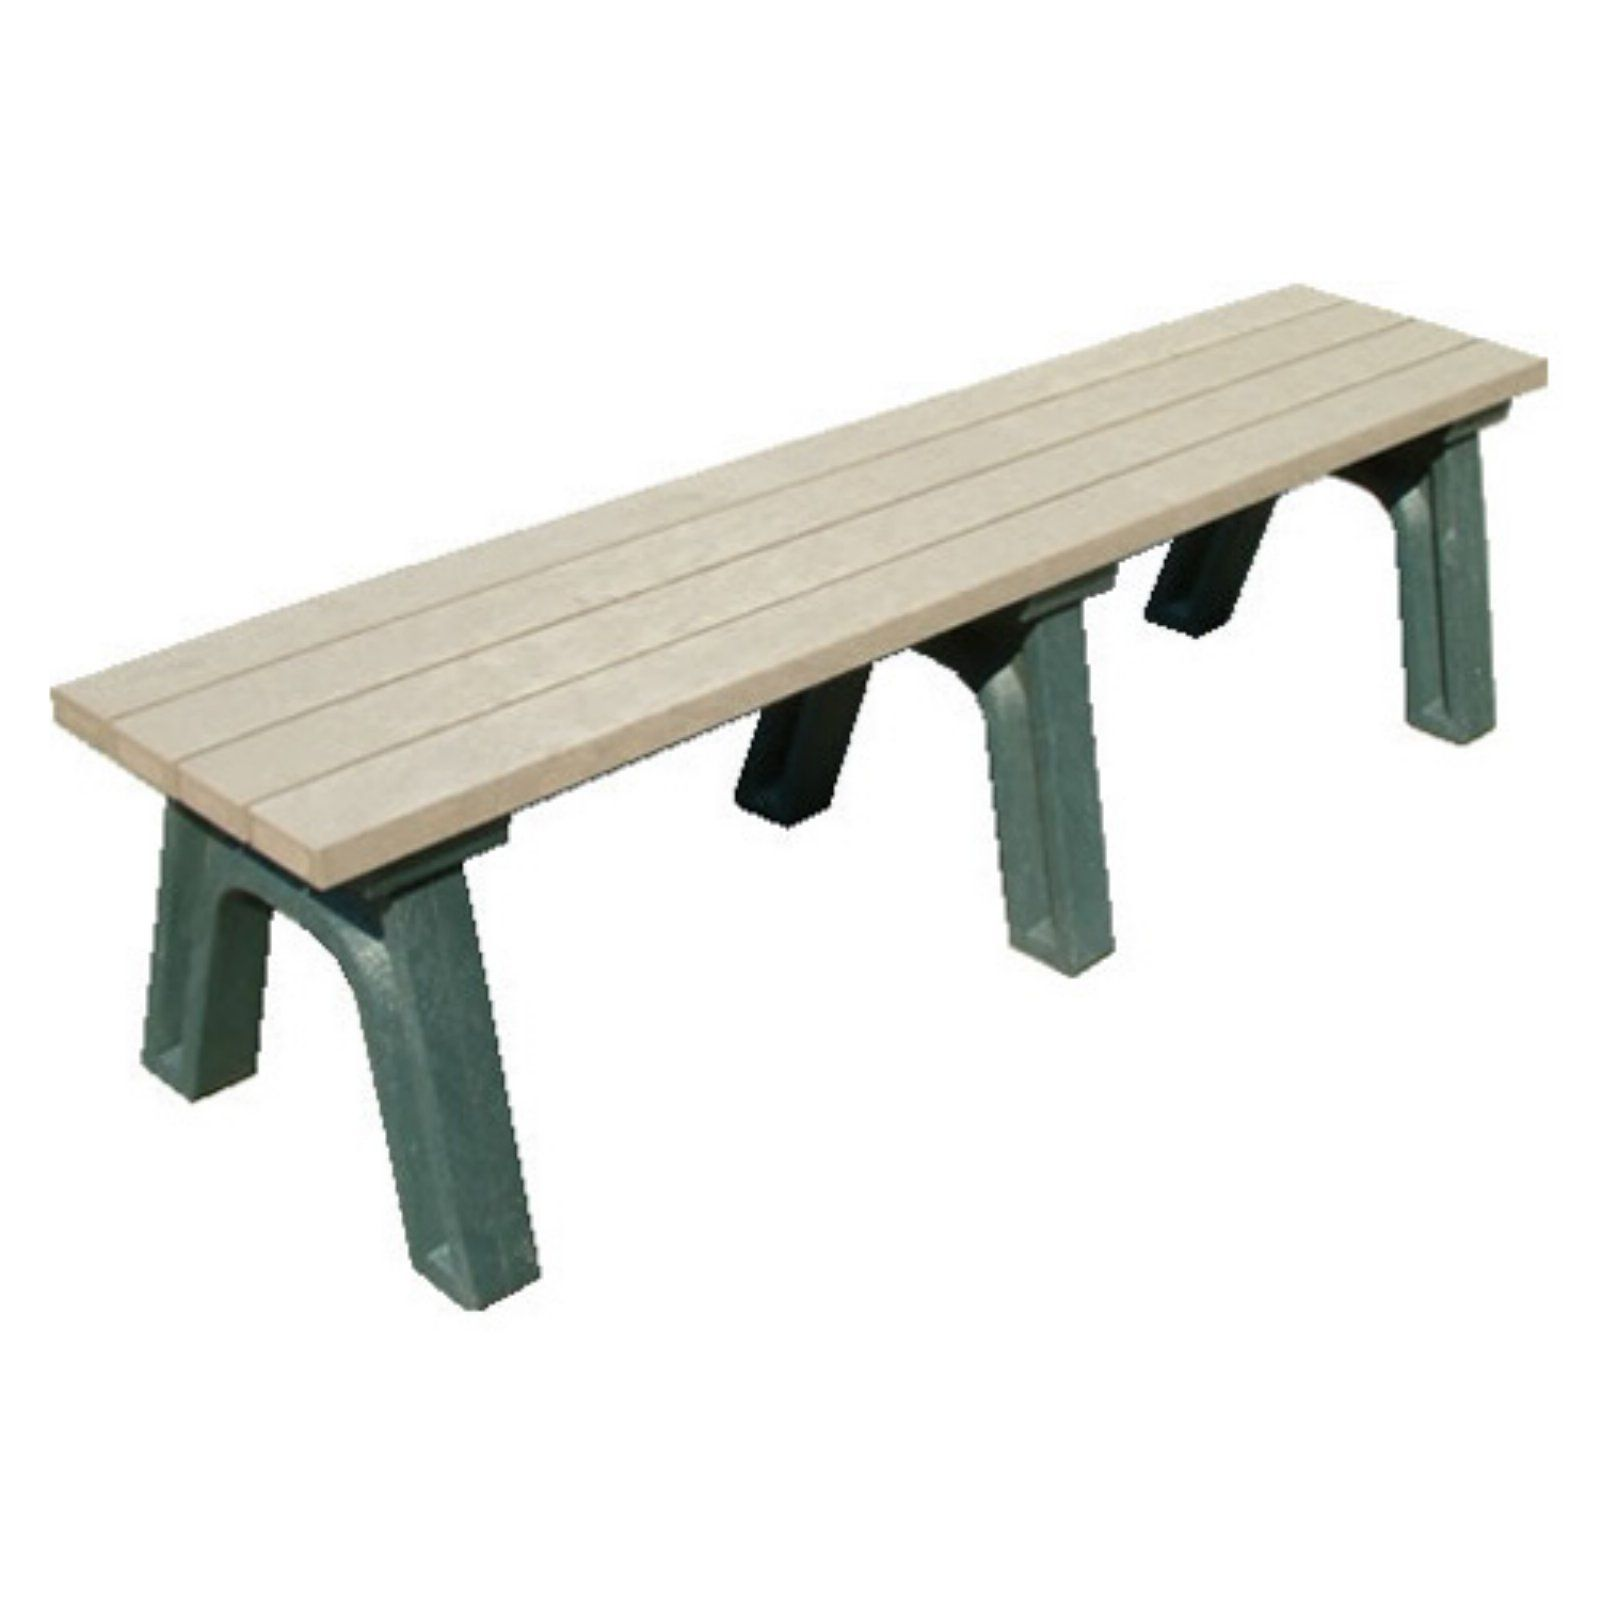 Miraculous Outdoor Polly Products Deluxe Recycled Plastic Flat Bench Gmtry Best Dining Table And Chair Ideas Images Gmtryco